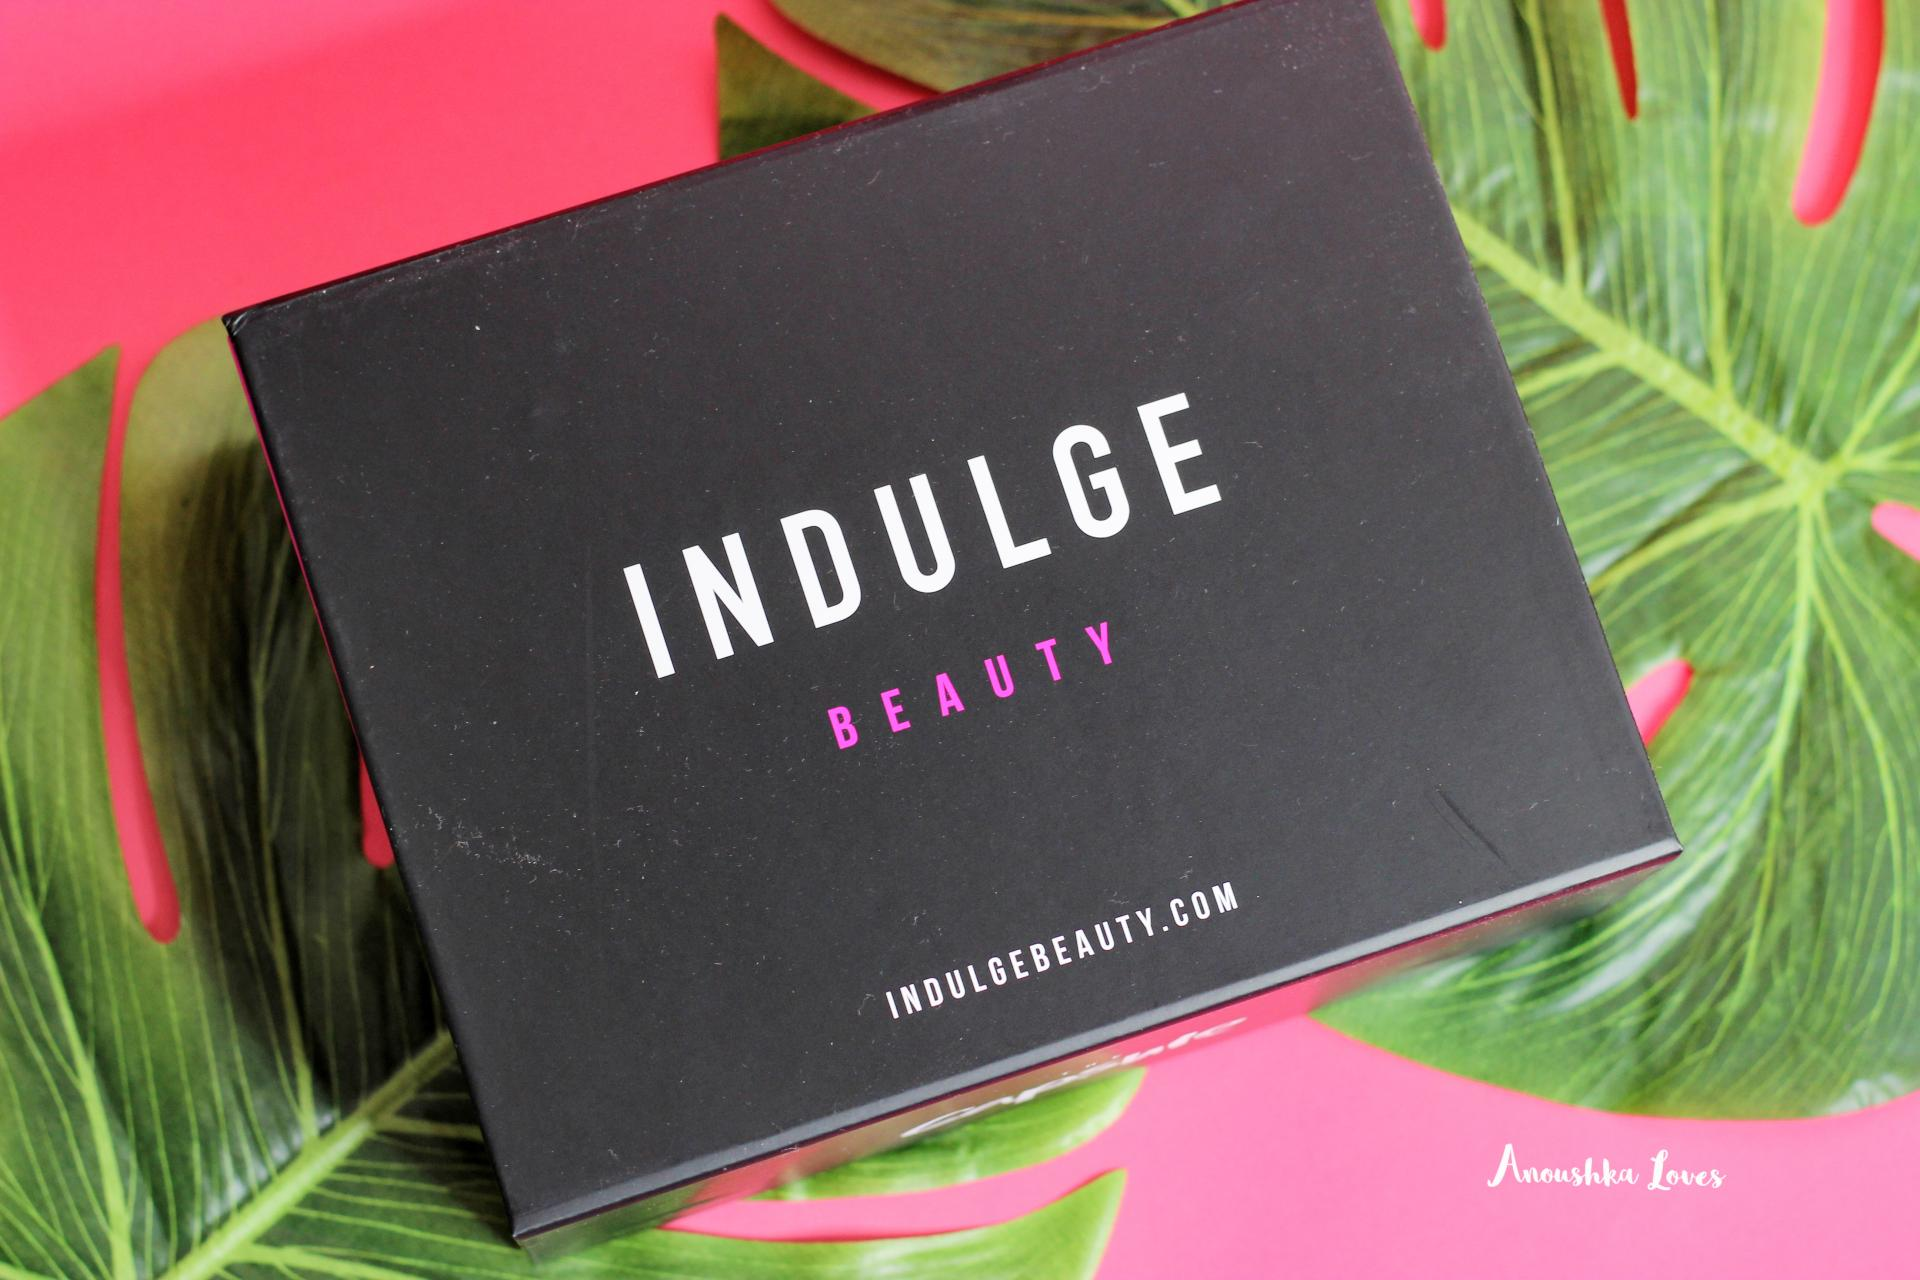 Indulge Beauty - The UKs newest shopping destination